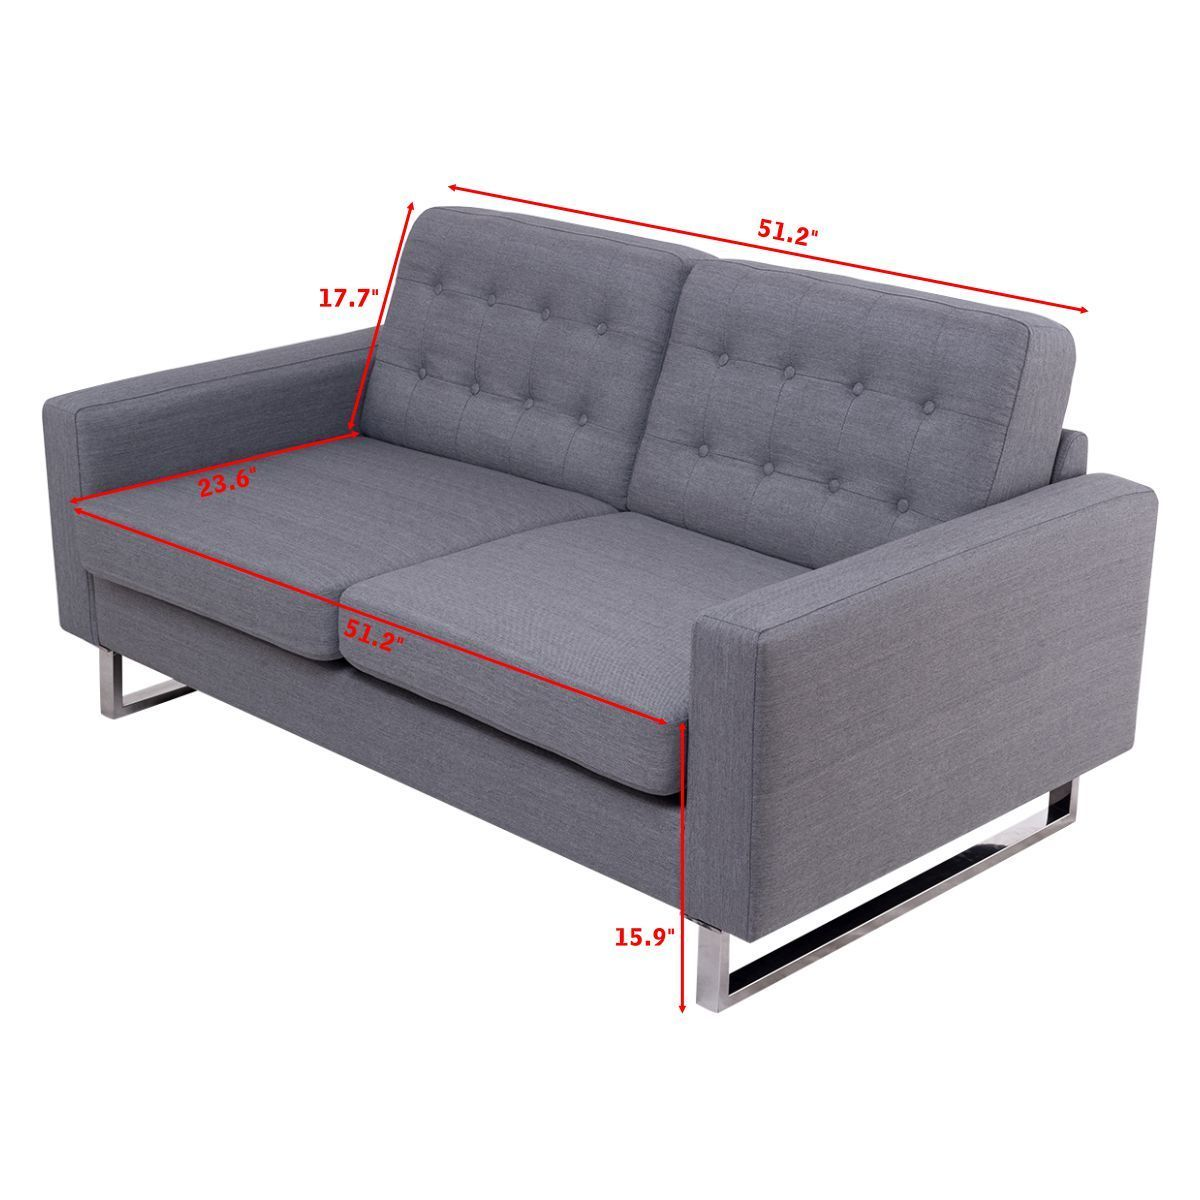 Costway: Costway 2 Seat Sofa Couch Loveseat Fabric Upholstered ...